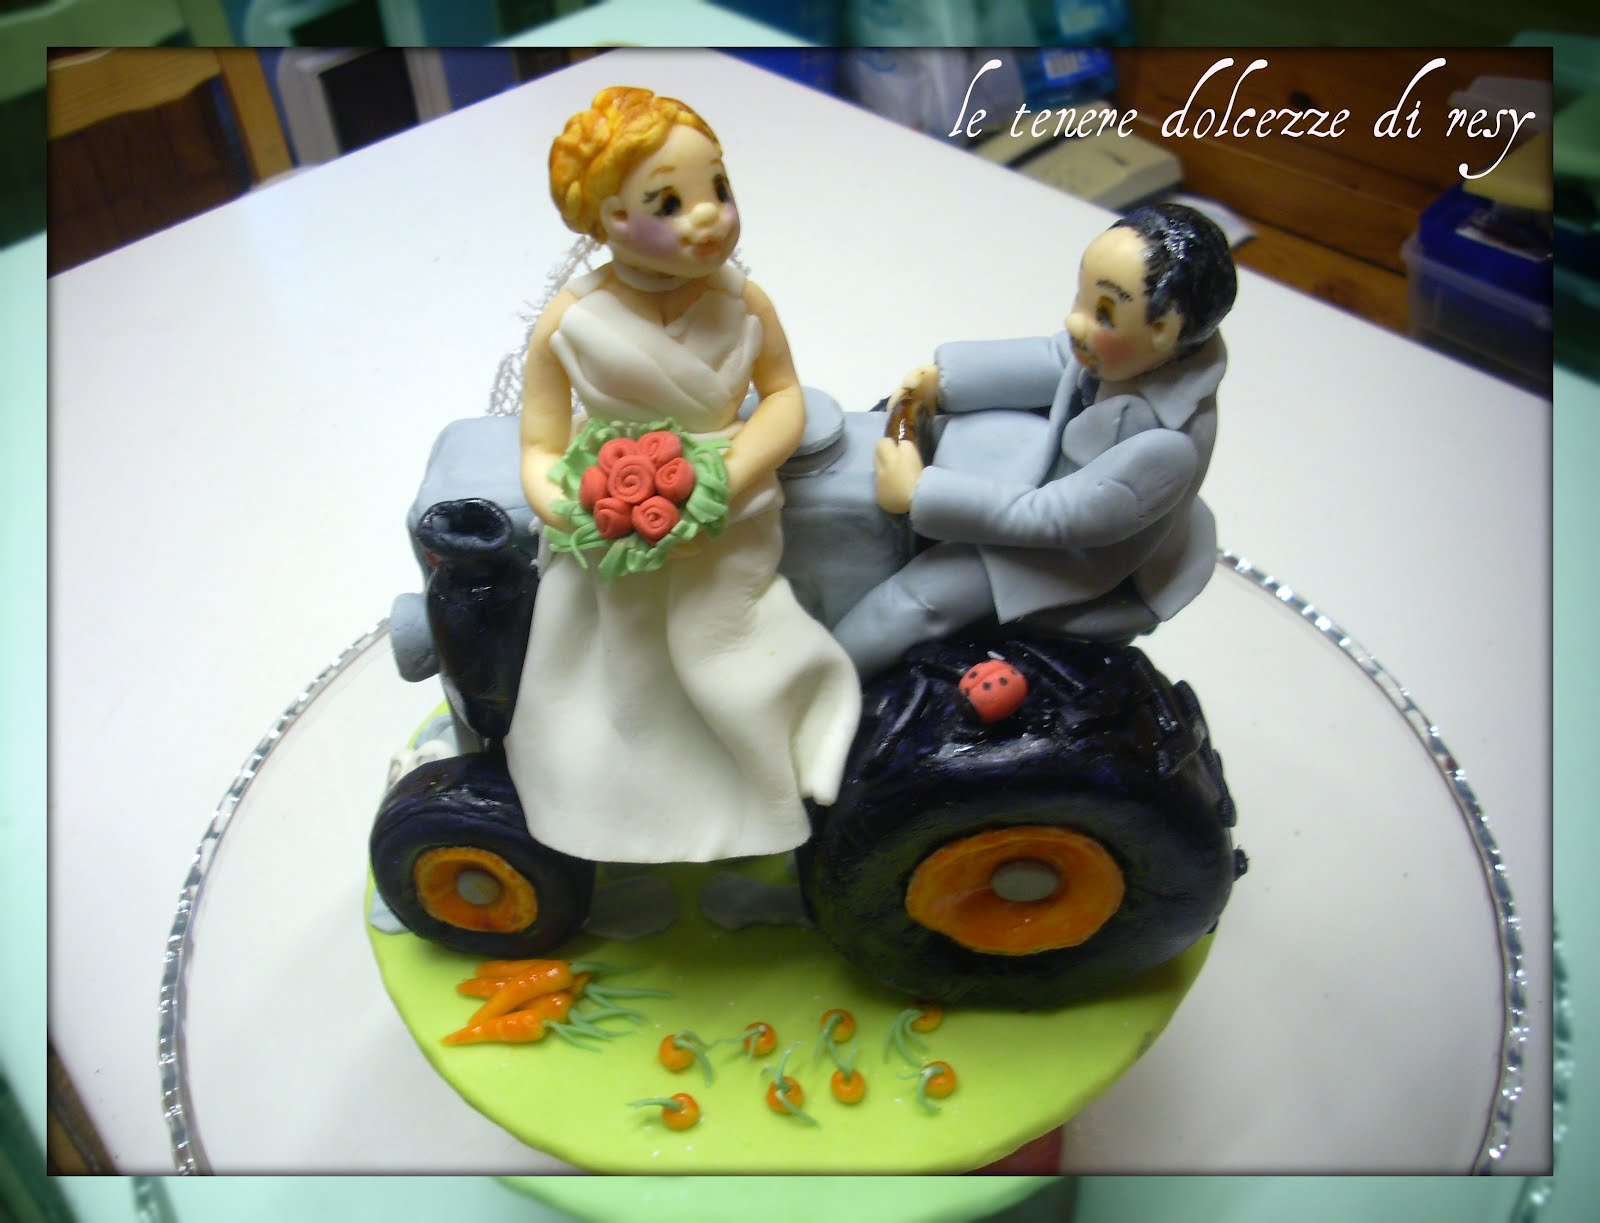 Pin Toppers Tractor Cake Bride And Groom Farmer Cake on